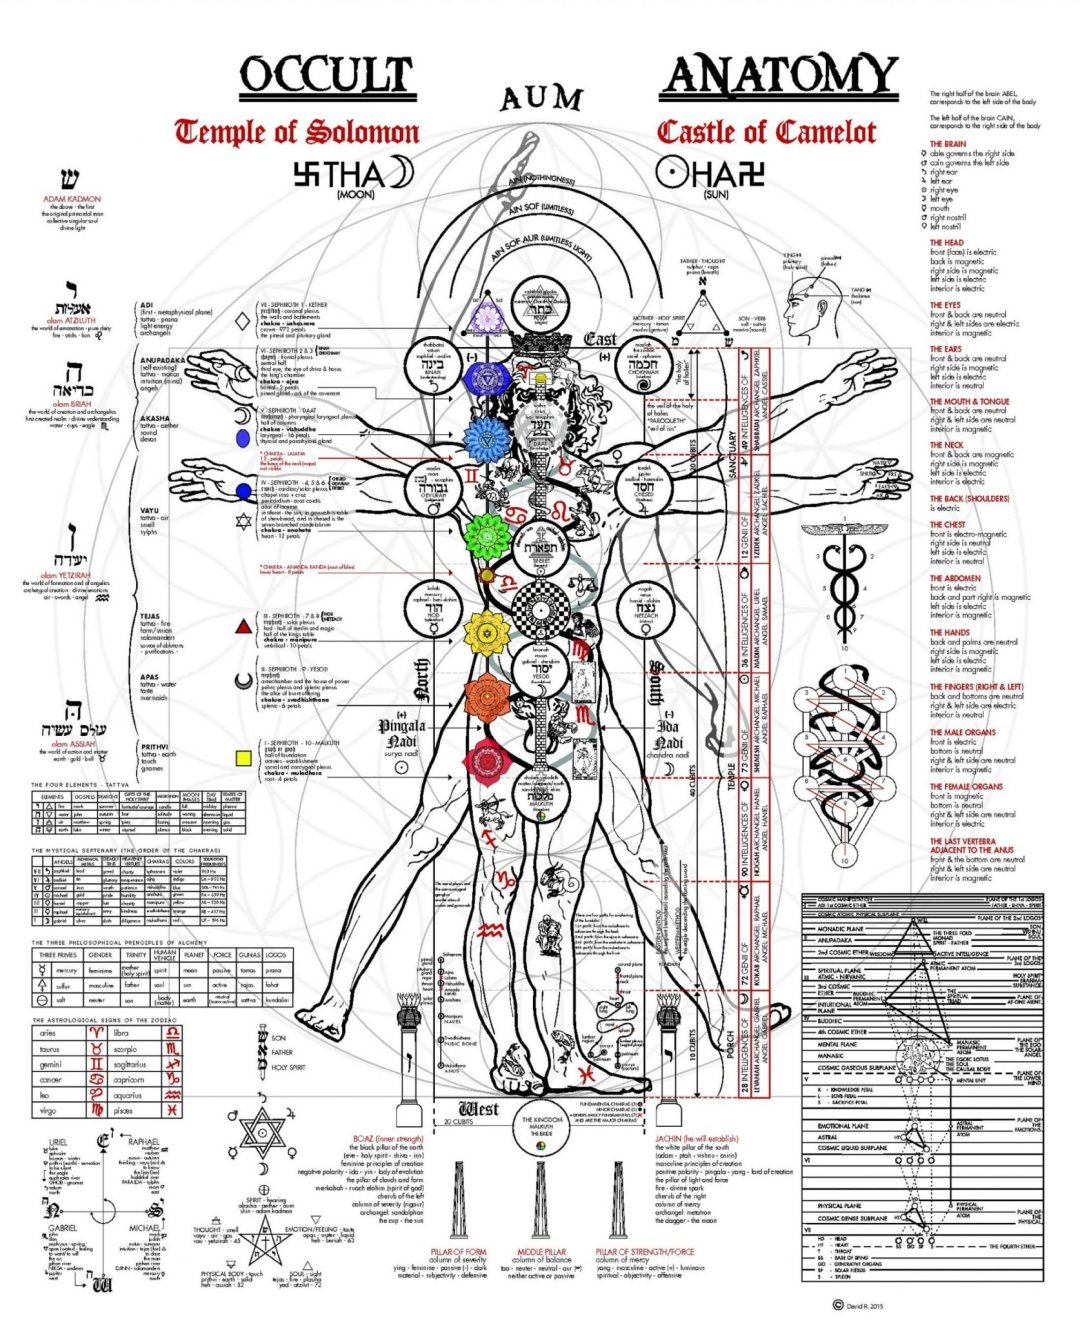 Occult Anatomy of man - Esoteric Knowledge of Subtle energy body activation